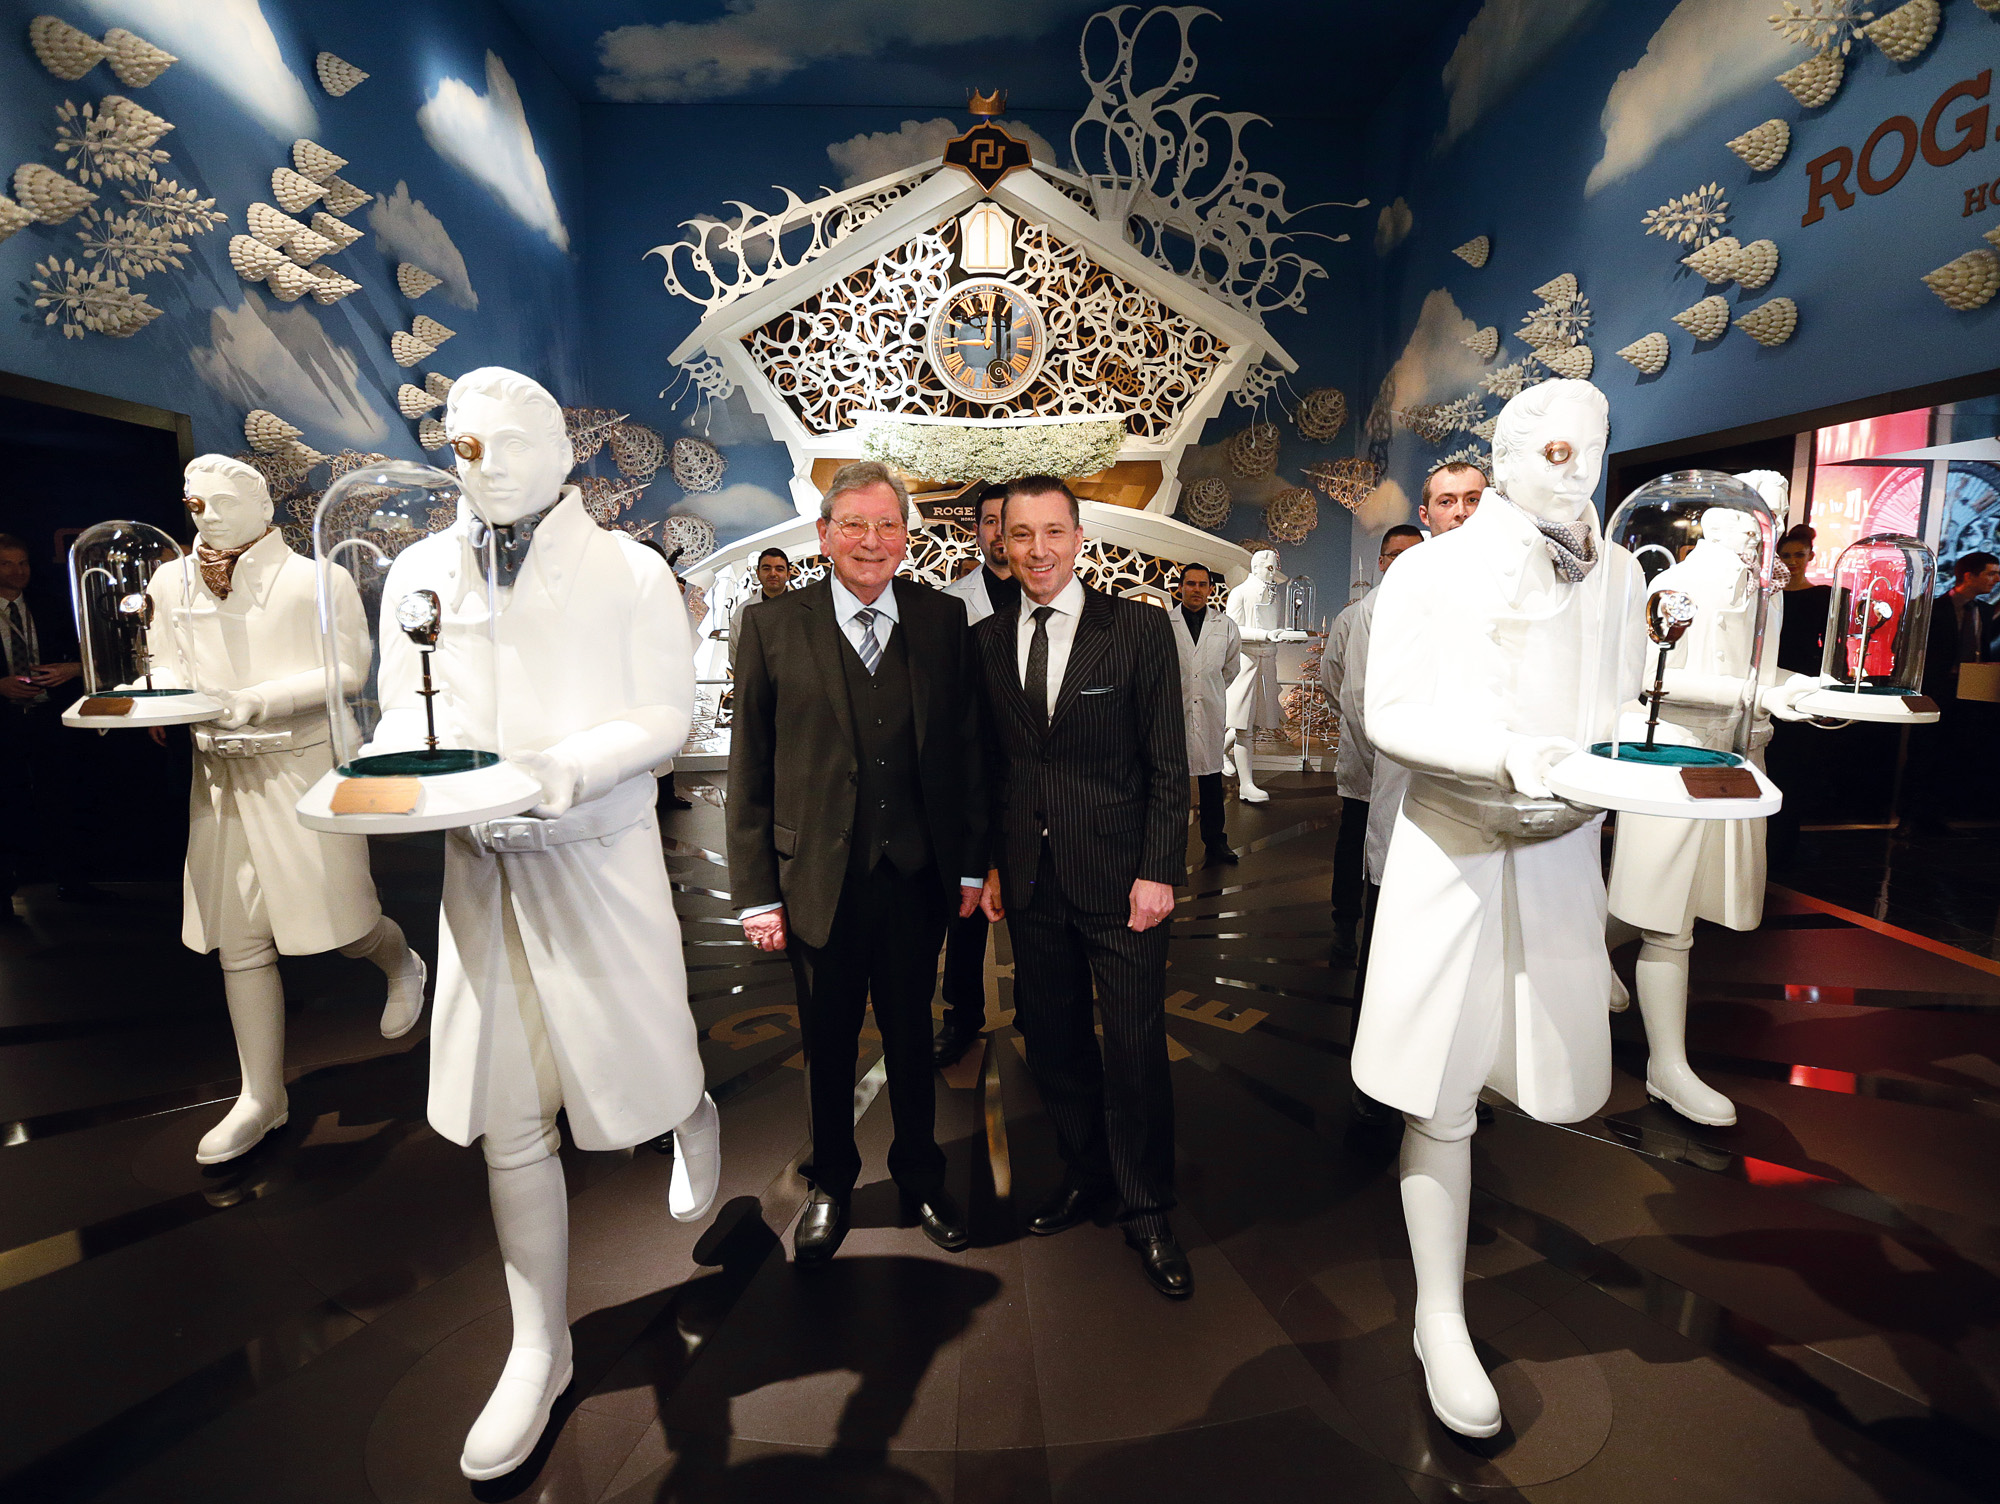 Mr Dubuis standing in front of the Roger Dubuis Stand at SIHH 2014